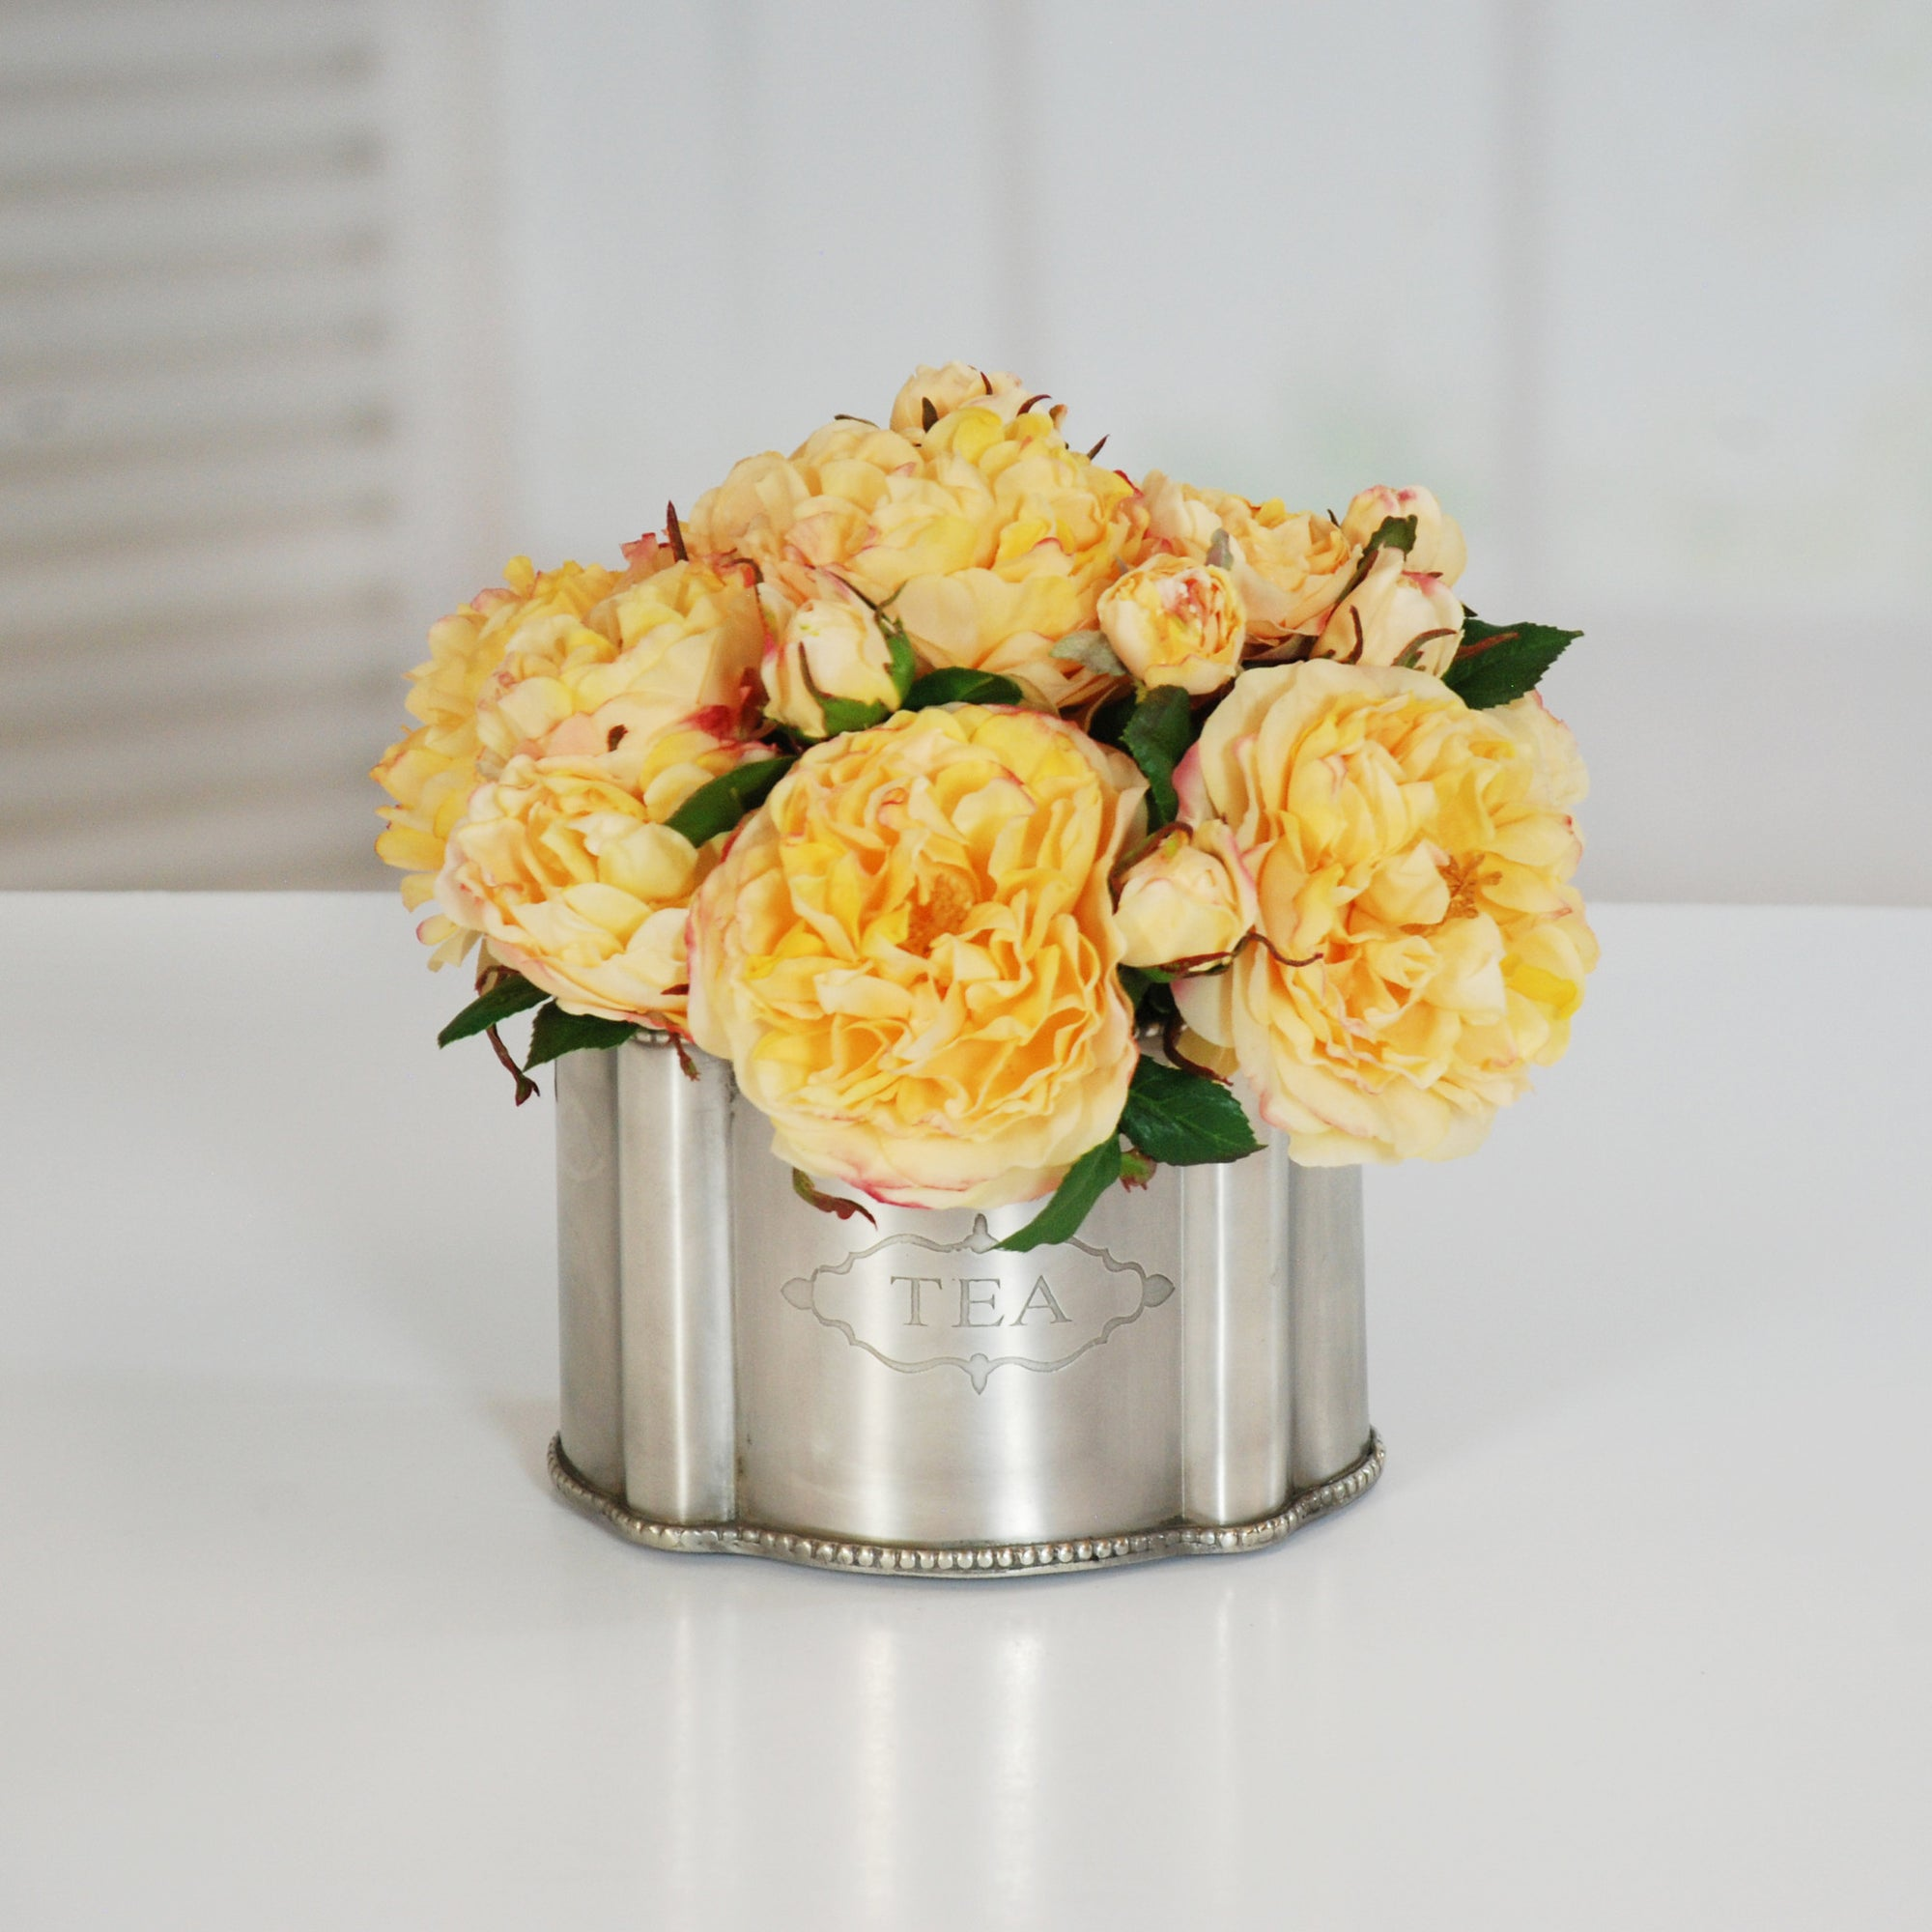 ROSE IN SILVER TIN (WHI019-GO) - Winward Home faux floral arrangements